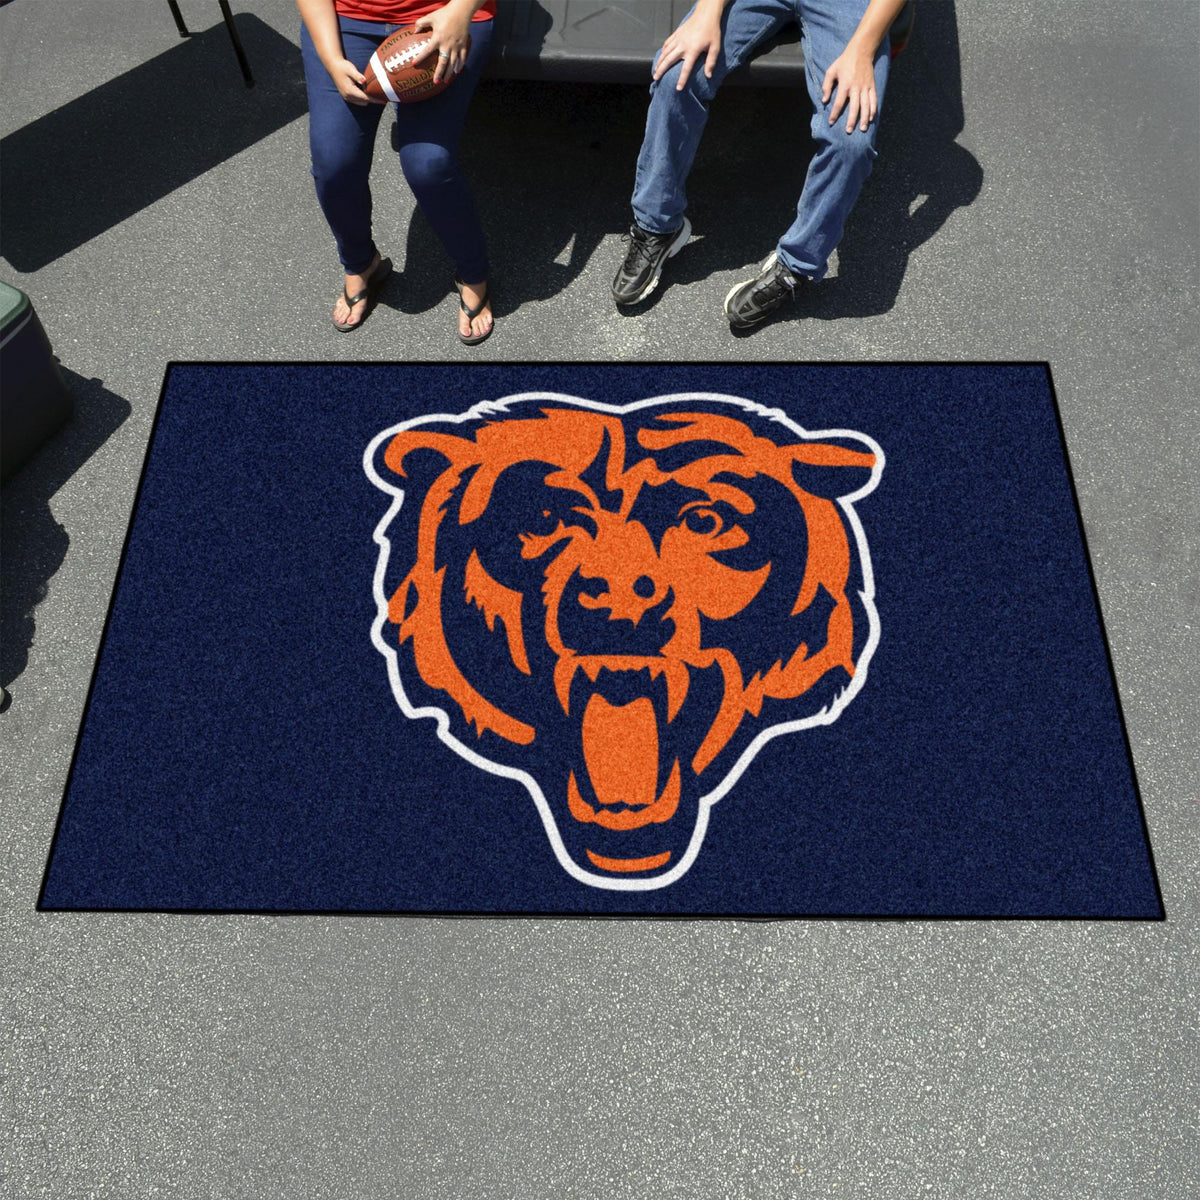 "NFL - Ulti-Mat, 59.5"" x 94.5"" NFL Mats, Rectangular Mats, Ulti-Mat, NFL, Home Fan Mats Chicago Bears 2"